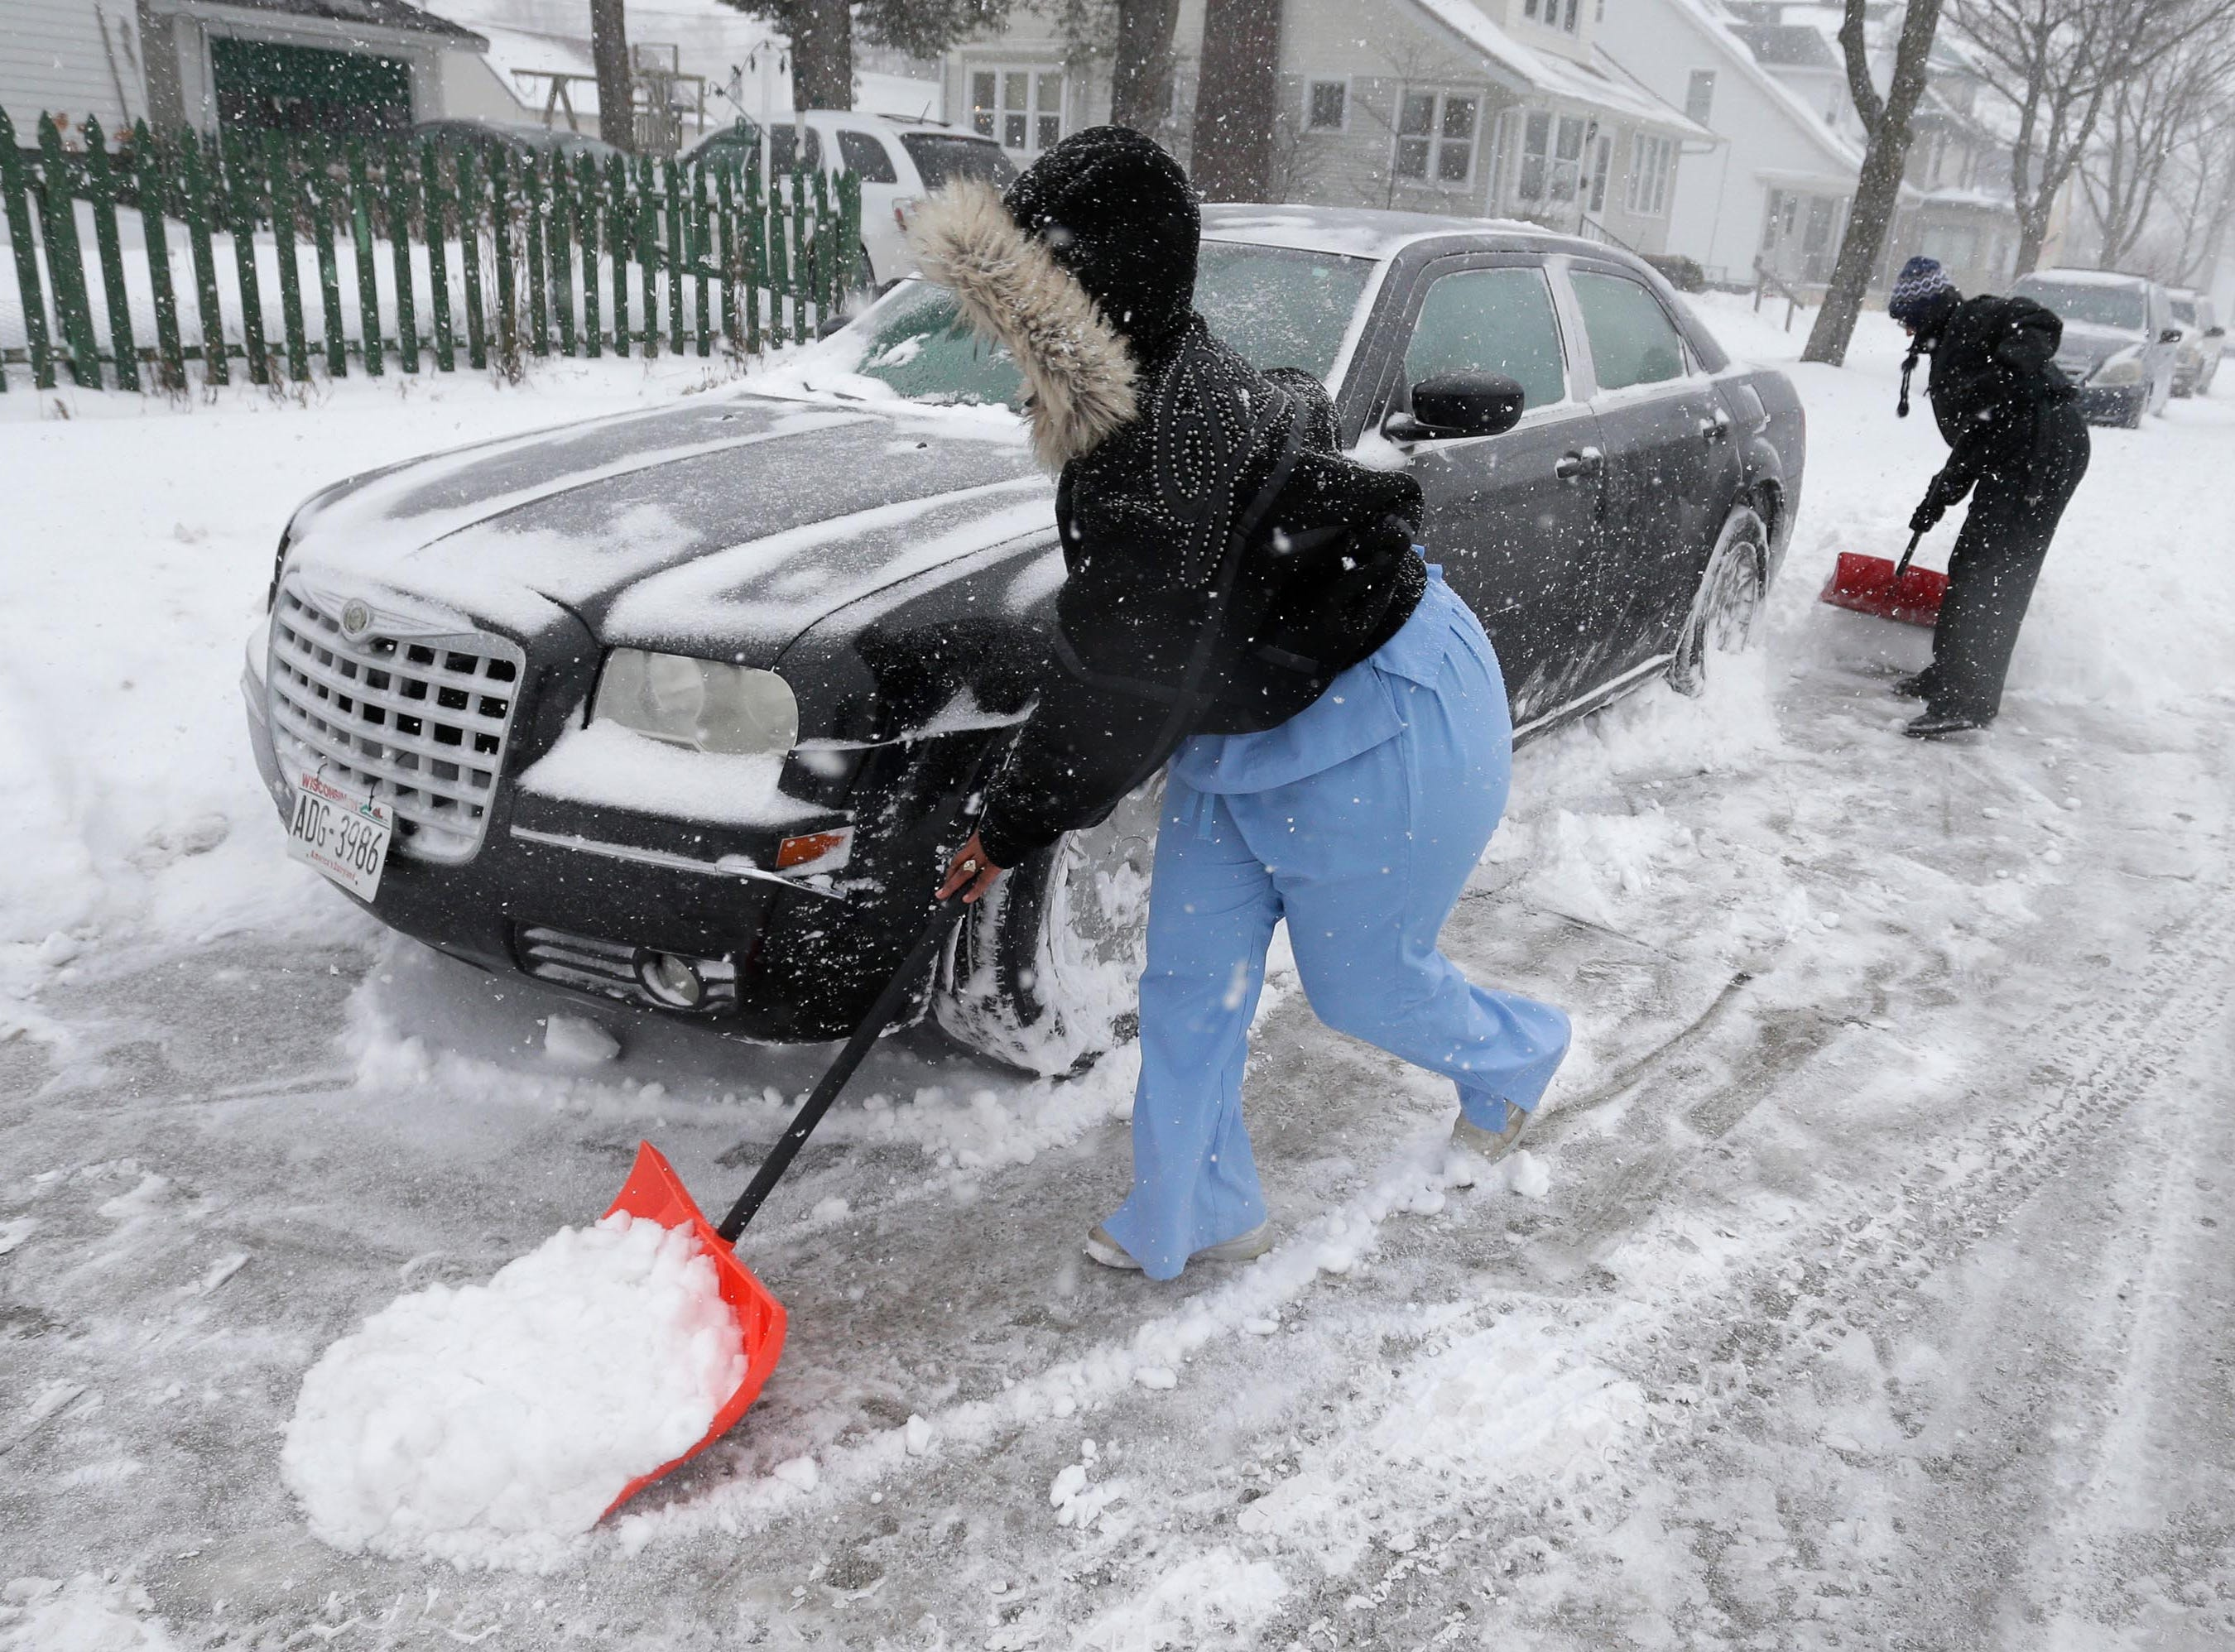 Ananomi Johnson of Sheboygan, left, and Wendy Wilson of Sheboygan, clear snow from around Johnson's car on South Eighth Street on Monday, Jan. 28, 2019, in Sheboygan, Wis. Wilson said that it was too much snow at one time.